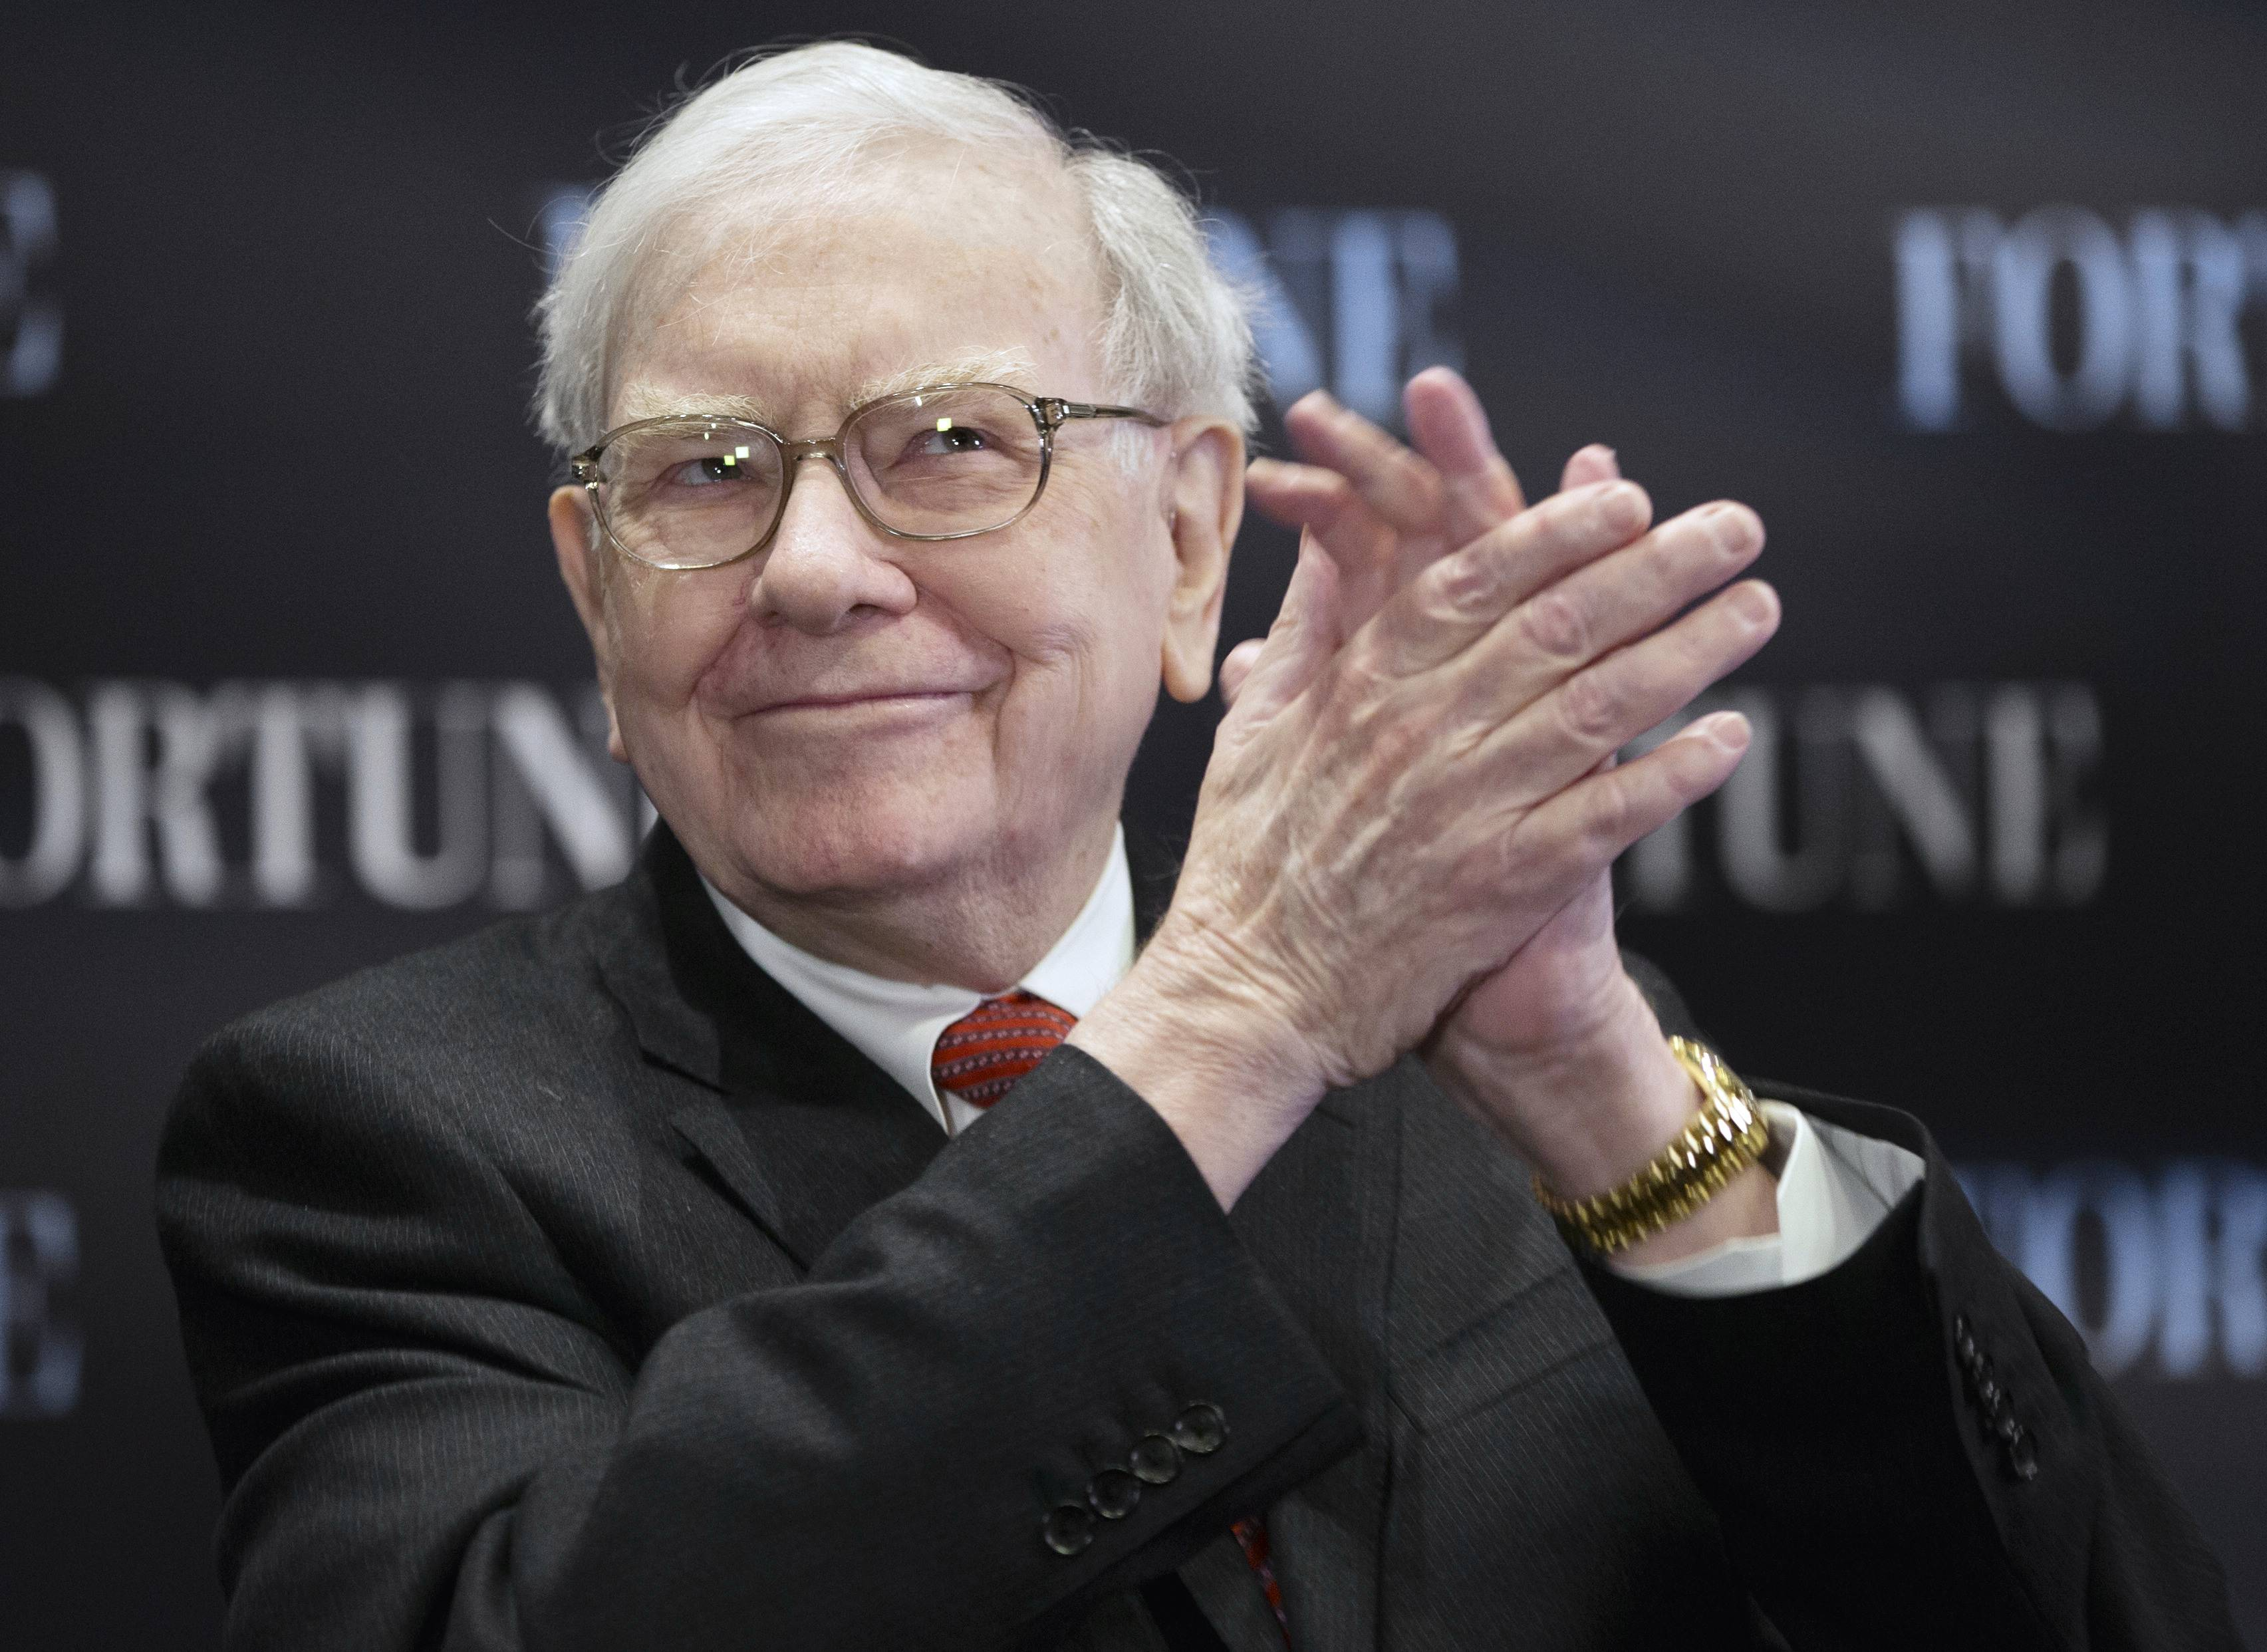 Warren Buffett's failure to beat the stock market in four of the past five years has raised the issue of whether Berkshire Hathaway's 83-year-old CEO has lost his touch.